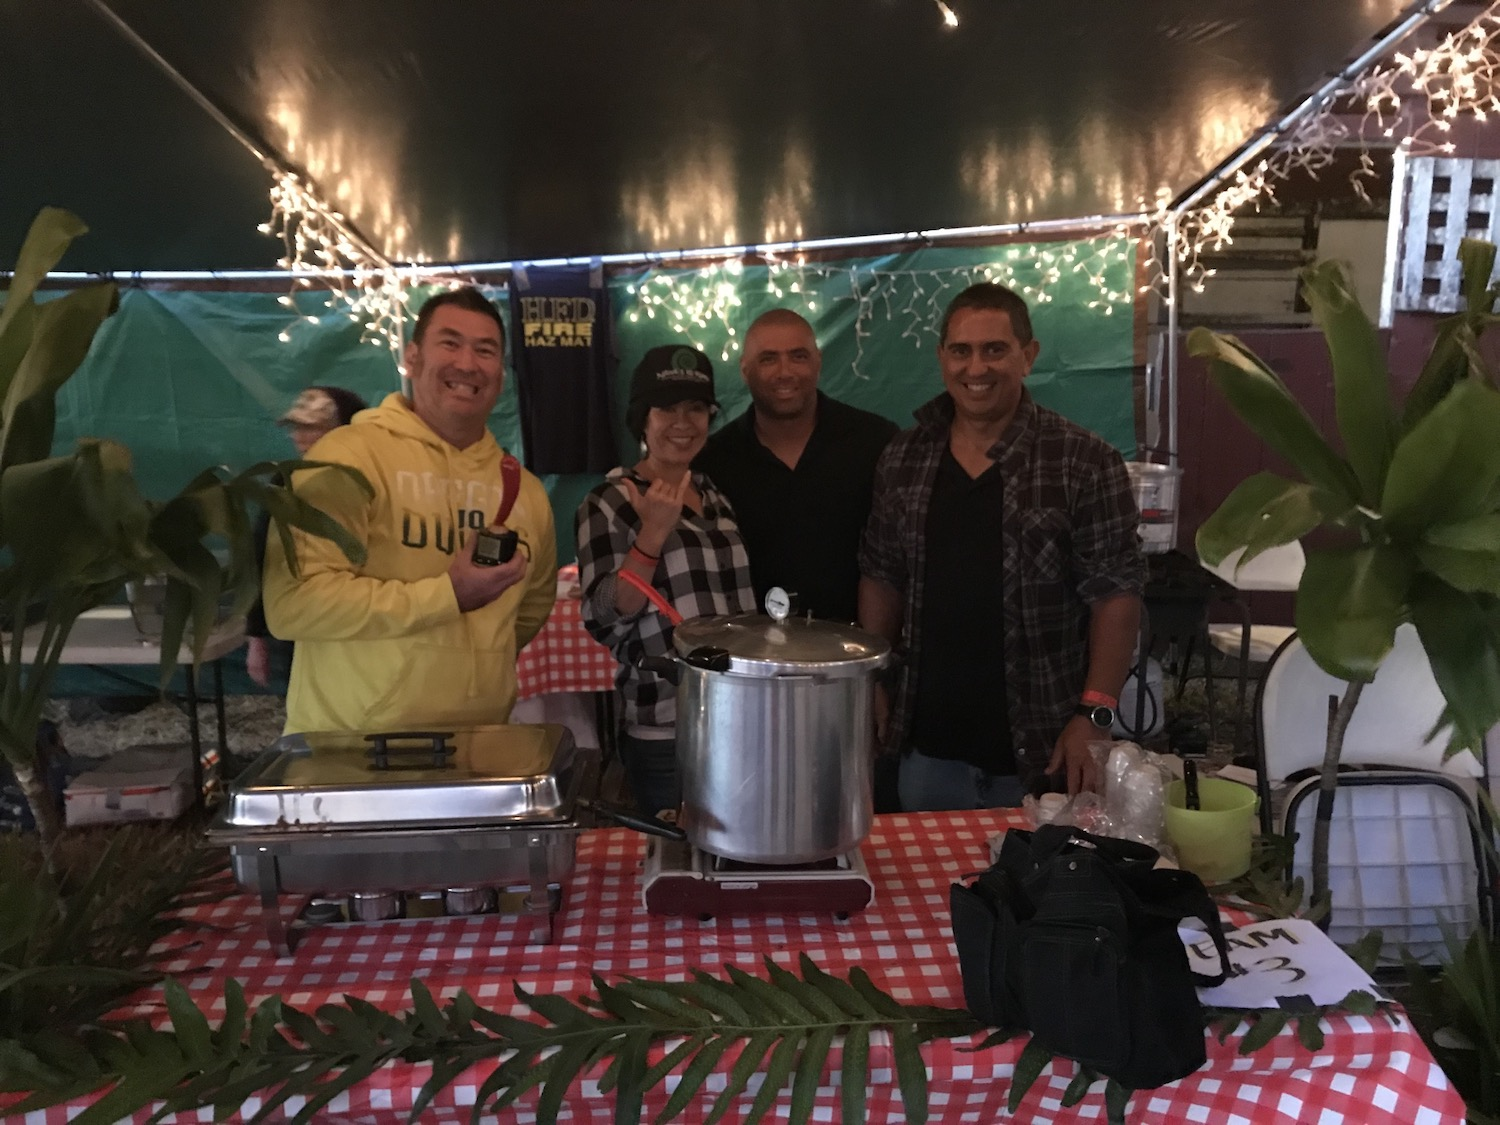 2nd Annual Firefighter Chili Cookoff for Wildfire Prevention_11_3_2018_49 copy.JPG